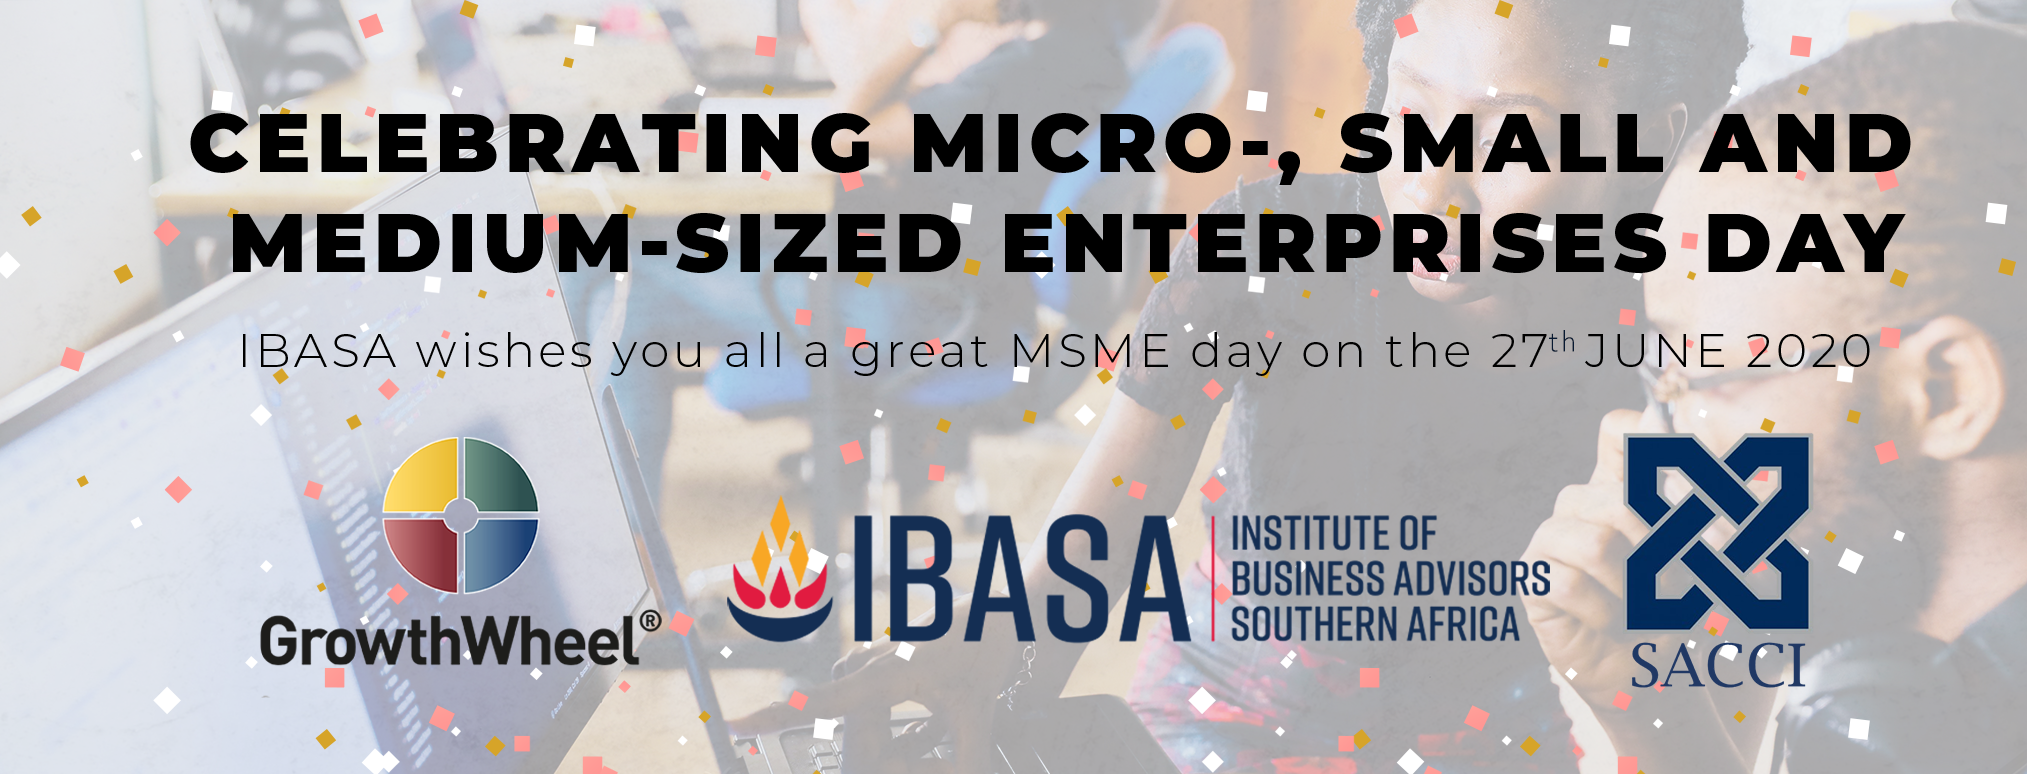 Come join the International Council for Small Business(ICSB) celebrating MSME's Day